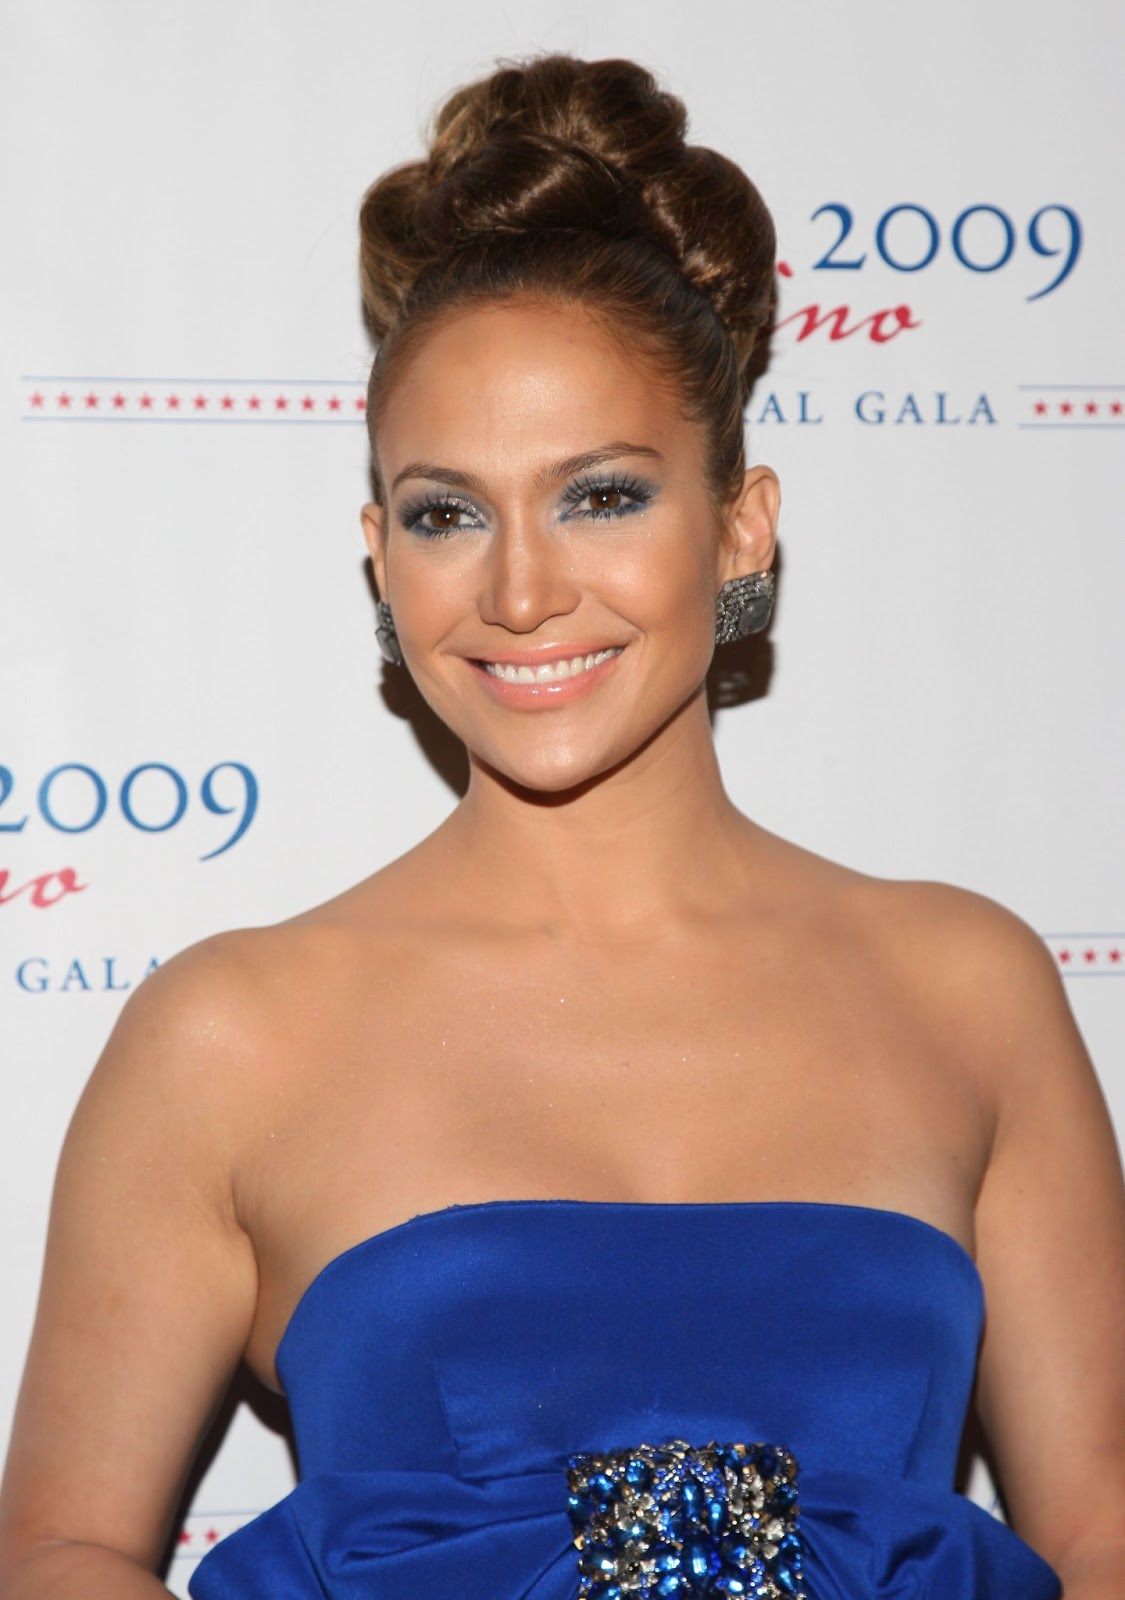 Jennifer Lopez at Award show in Blue Dress